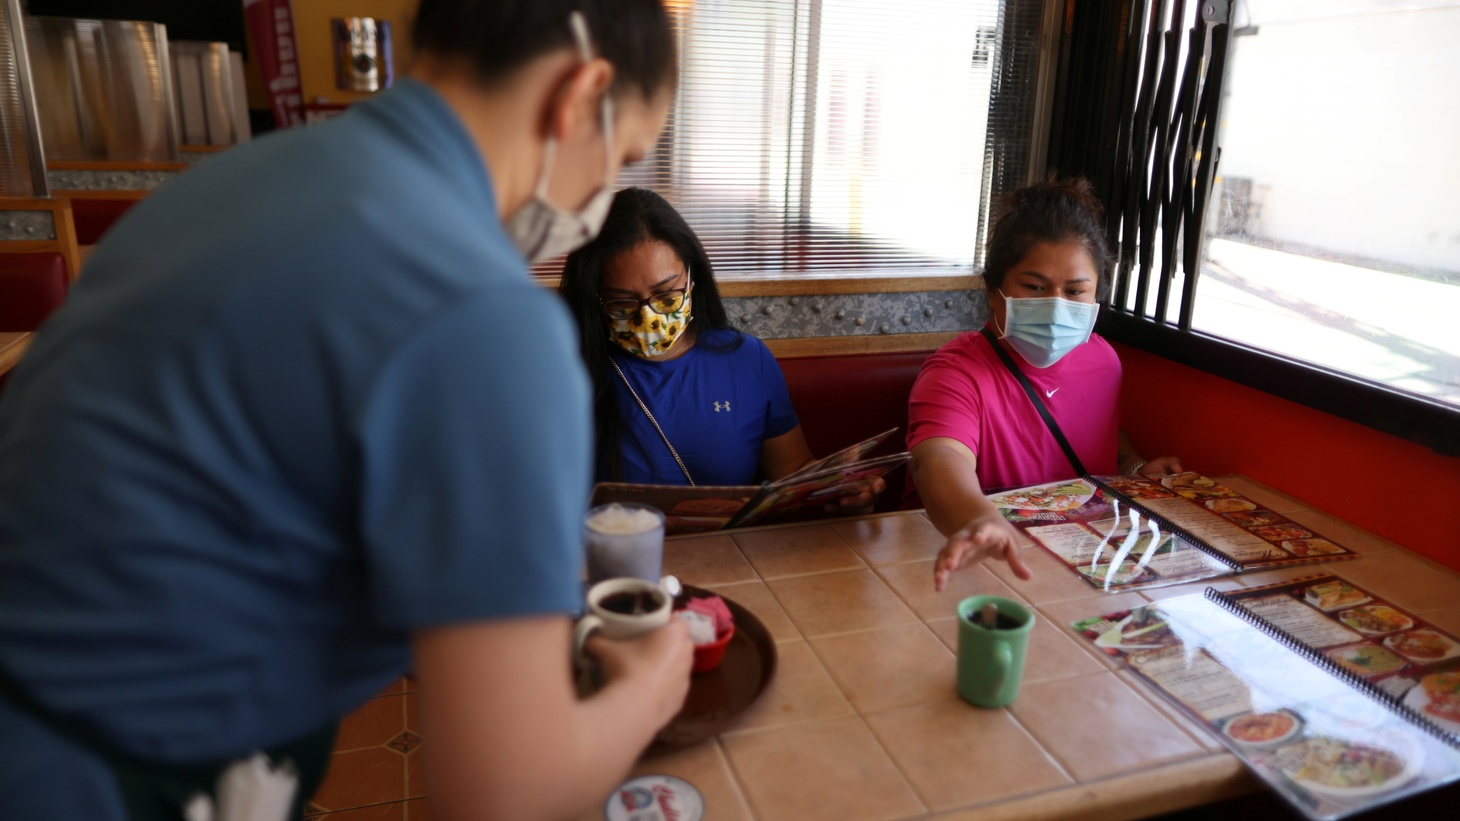 Alexis Reyna, 20 serves coffee to Ana Dominguez, 34, and Saray Aguilar, 33, at Chalio Mexican Restaurant, as the coronavirus (COVID-19) disease continues, in East Los Angeles, California, U.S., May 26, 2021.